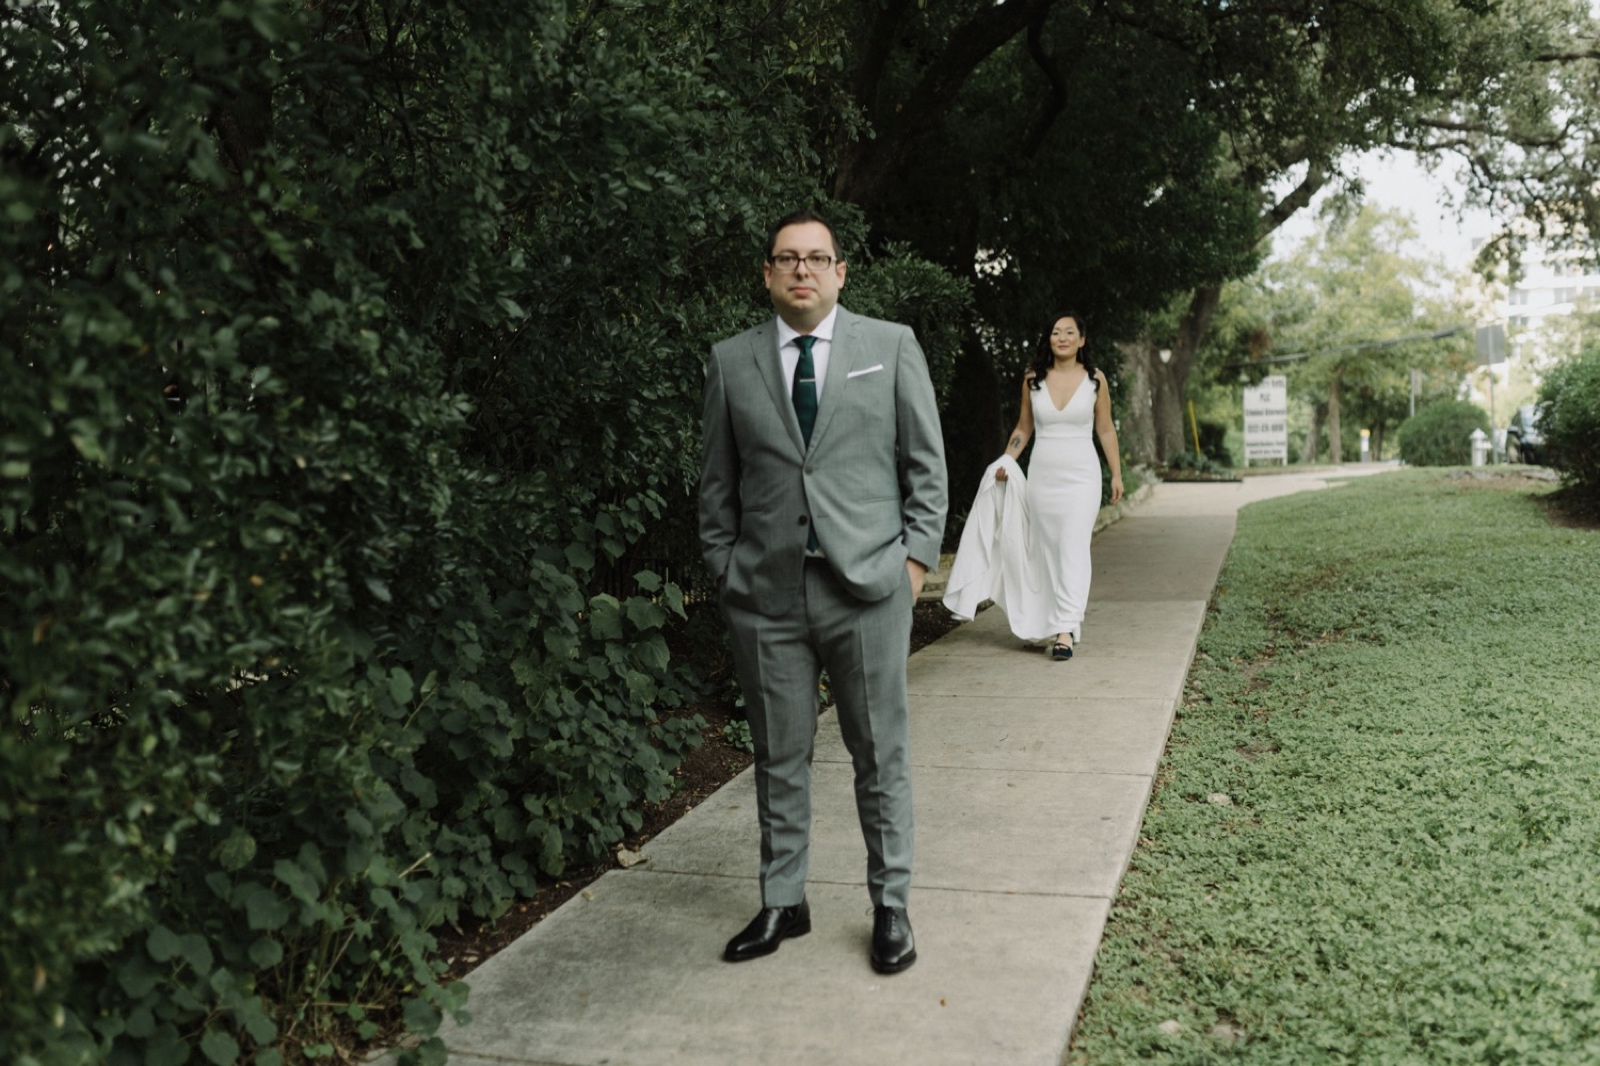 First look on the garden pathway outside of a historic house in Austin